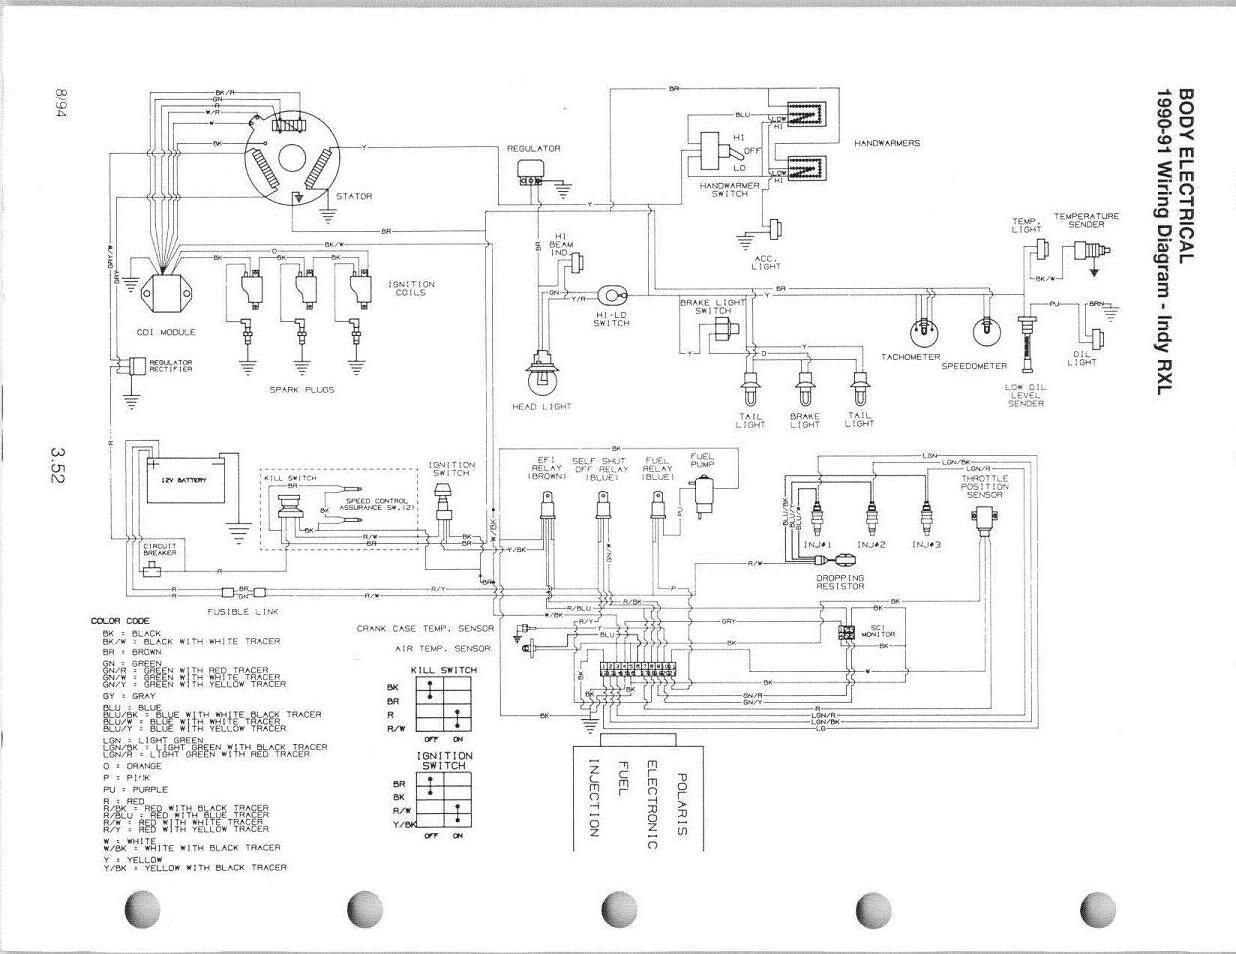 92 polaris trailblazer wiring schematic